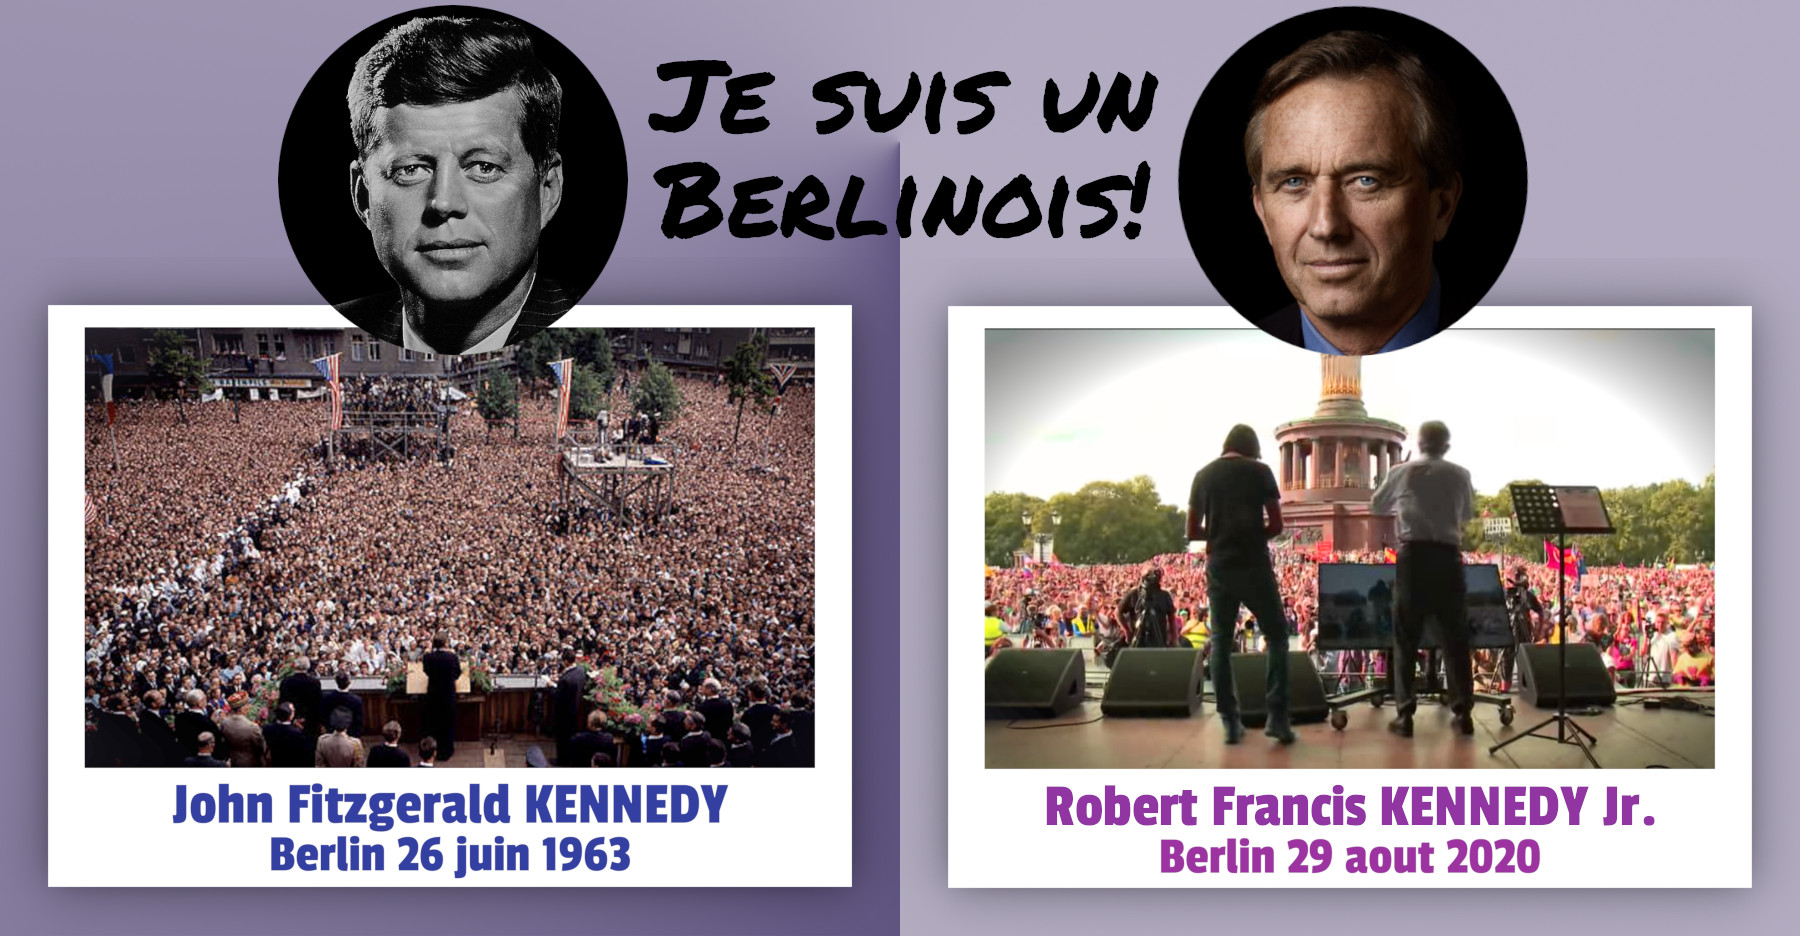 Robert Francis Kennedy Jr. à Berlin Le 29 Aout 2020